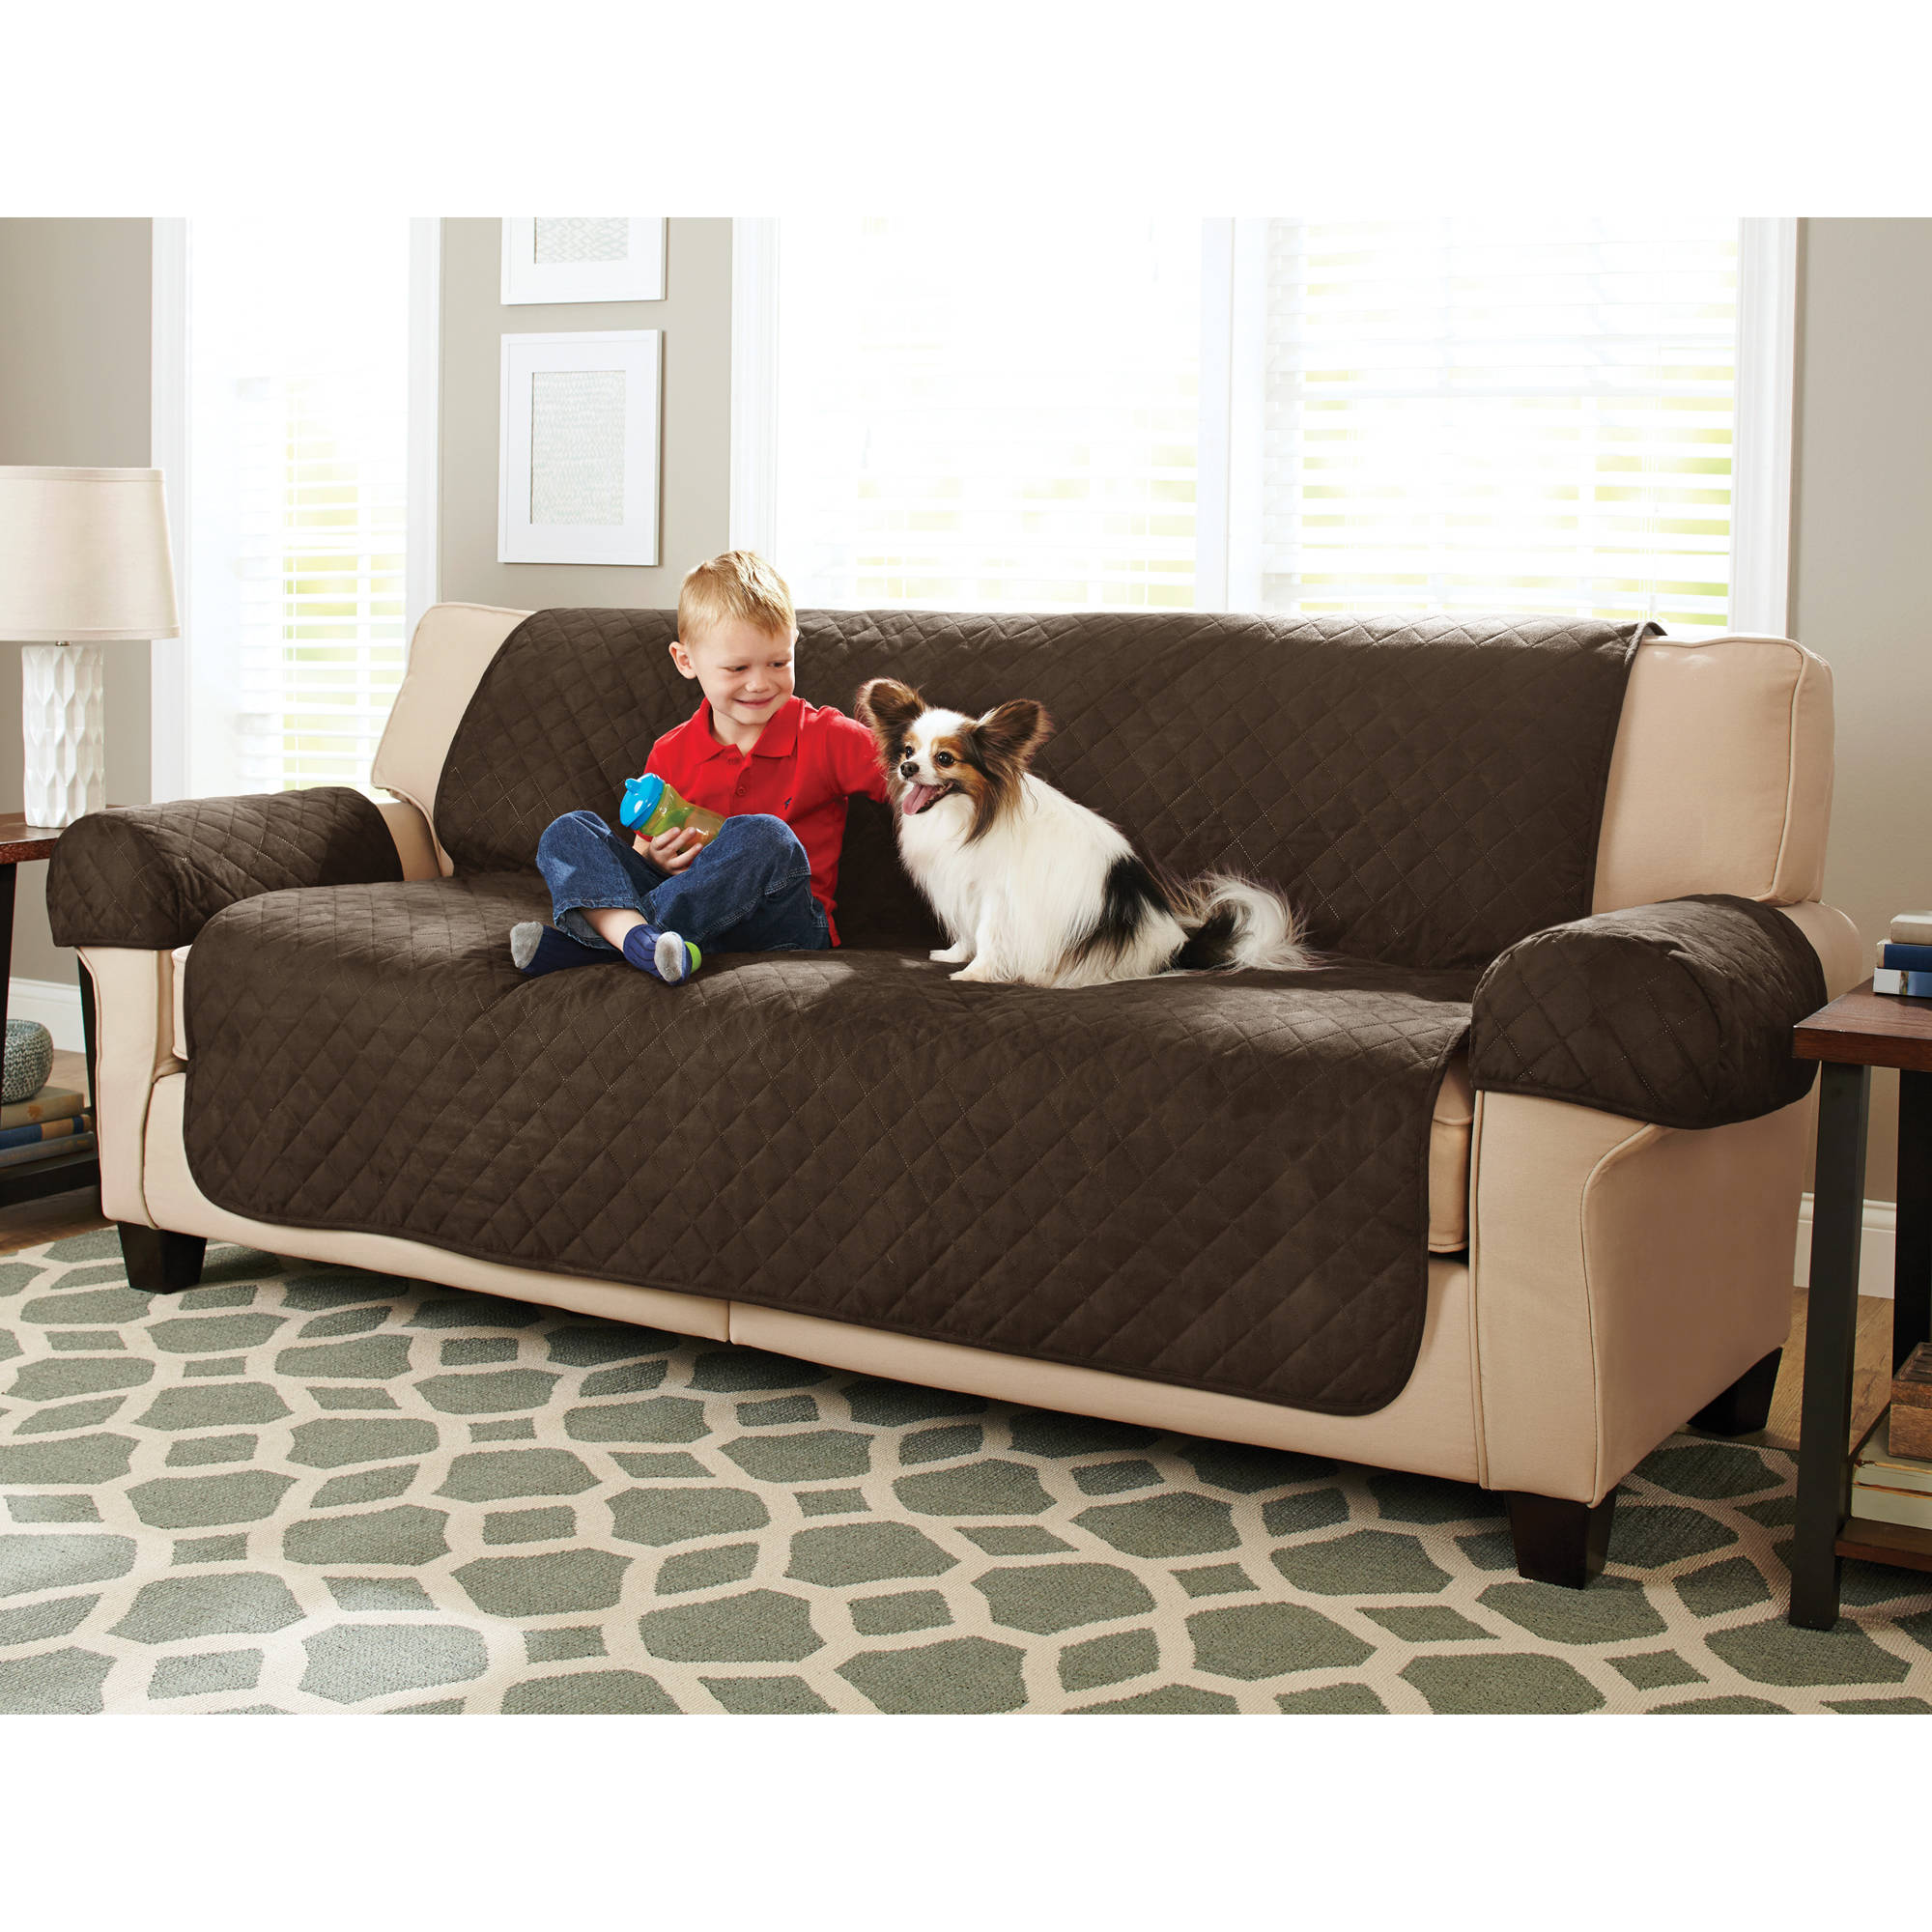 Better Homes And Gardens Waterproof Non Slip Sofa Furniture Pet